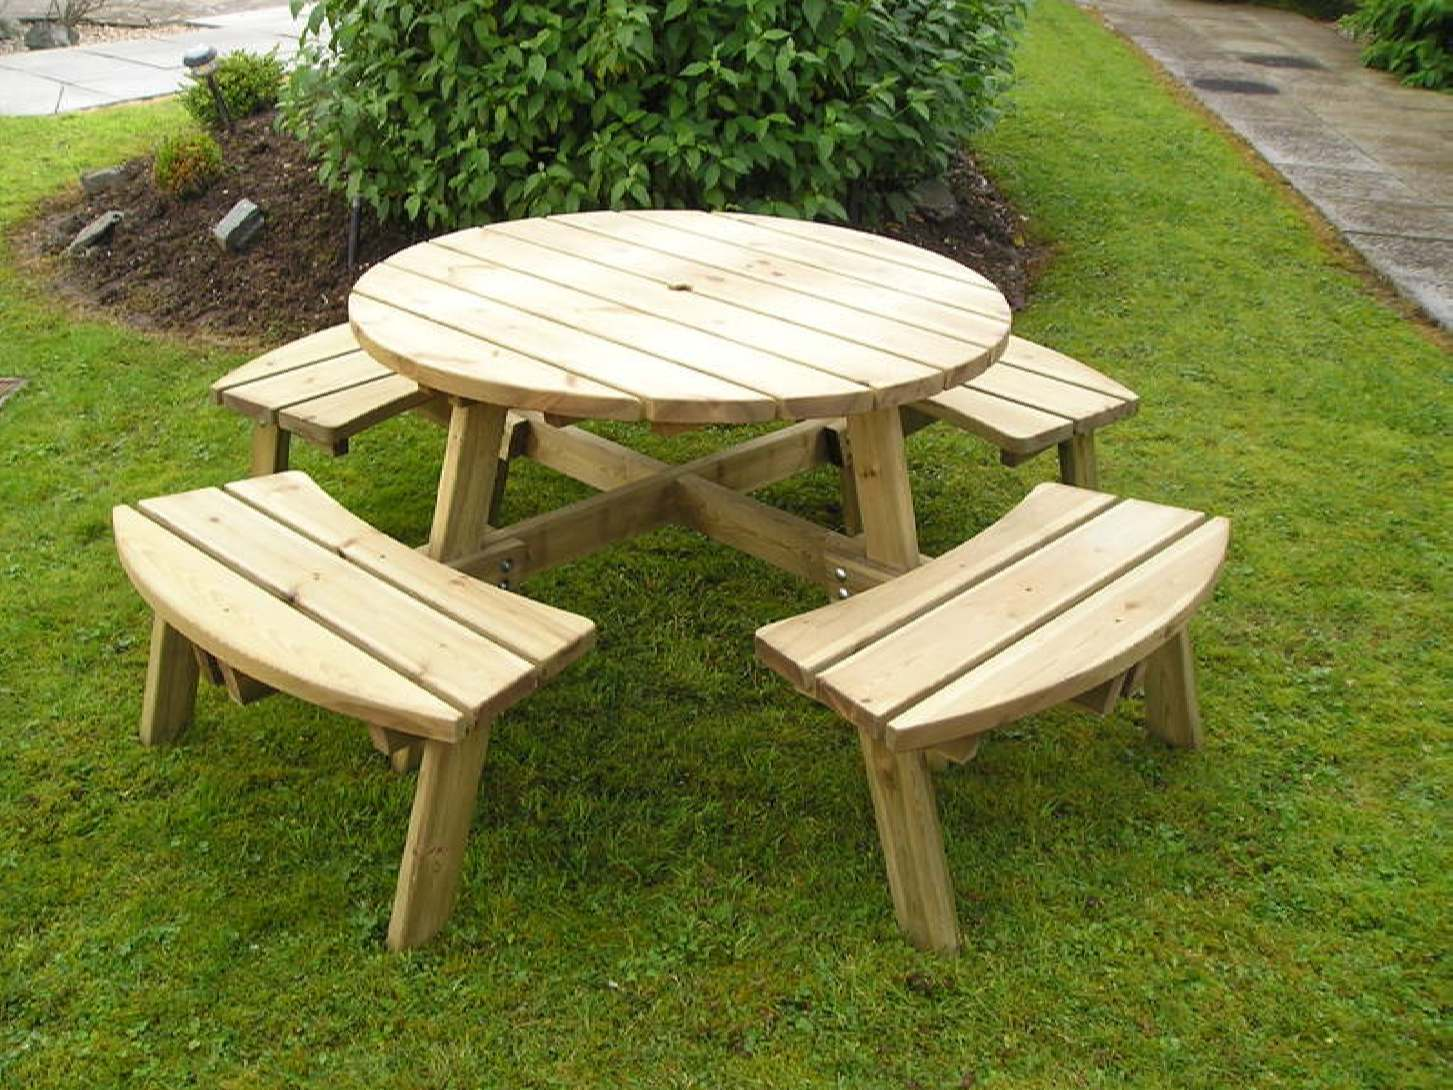 Table Folding Outdoor Circular Wooden Wood Garden Center